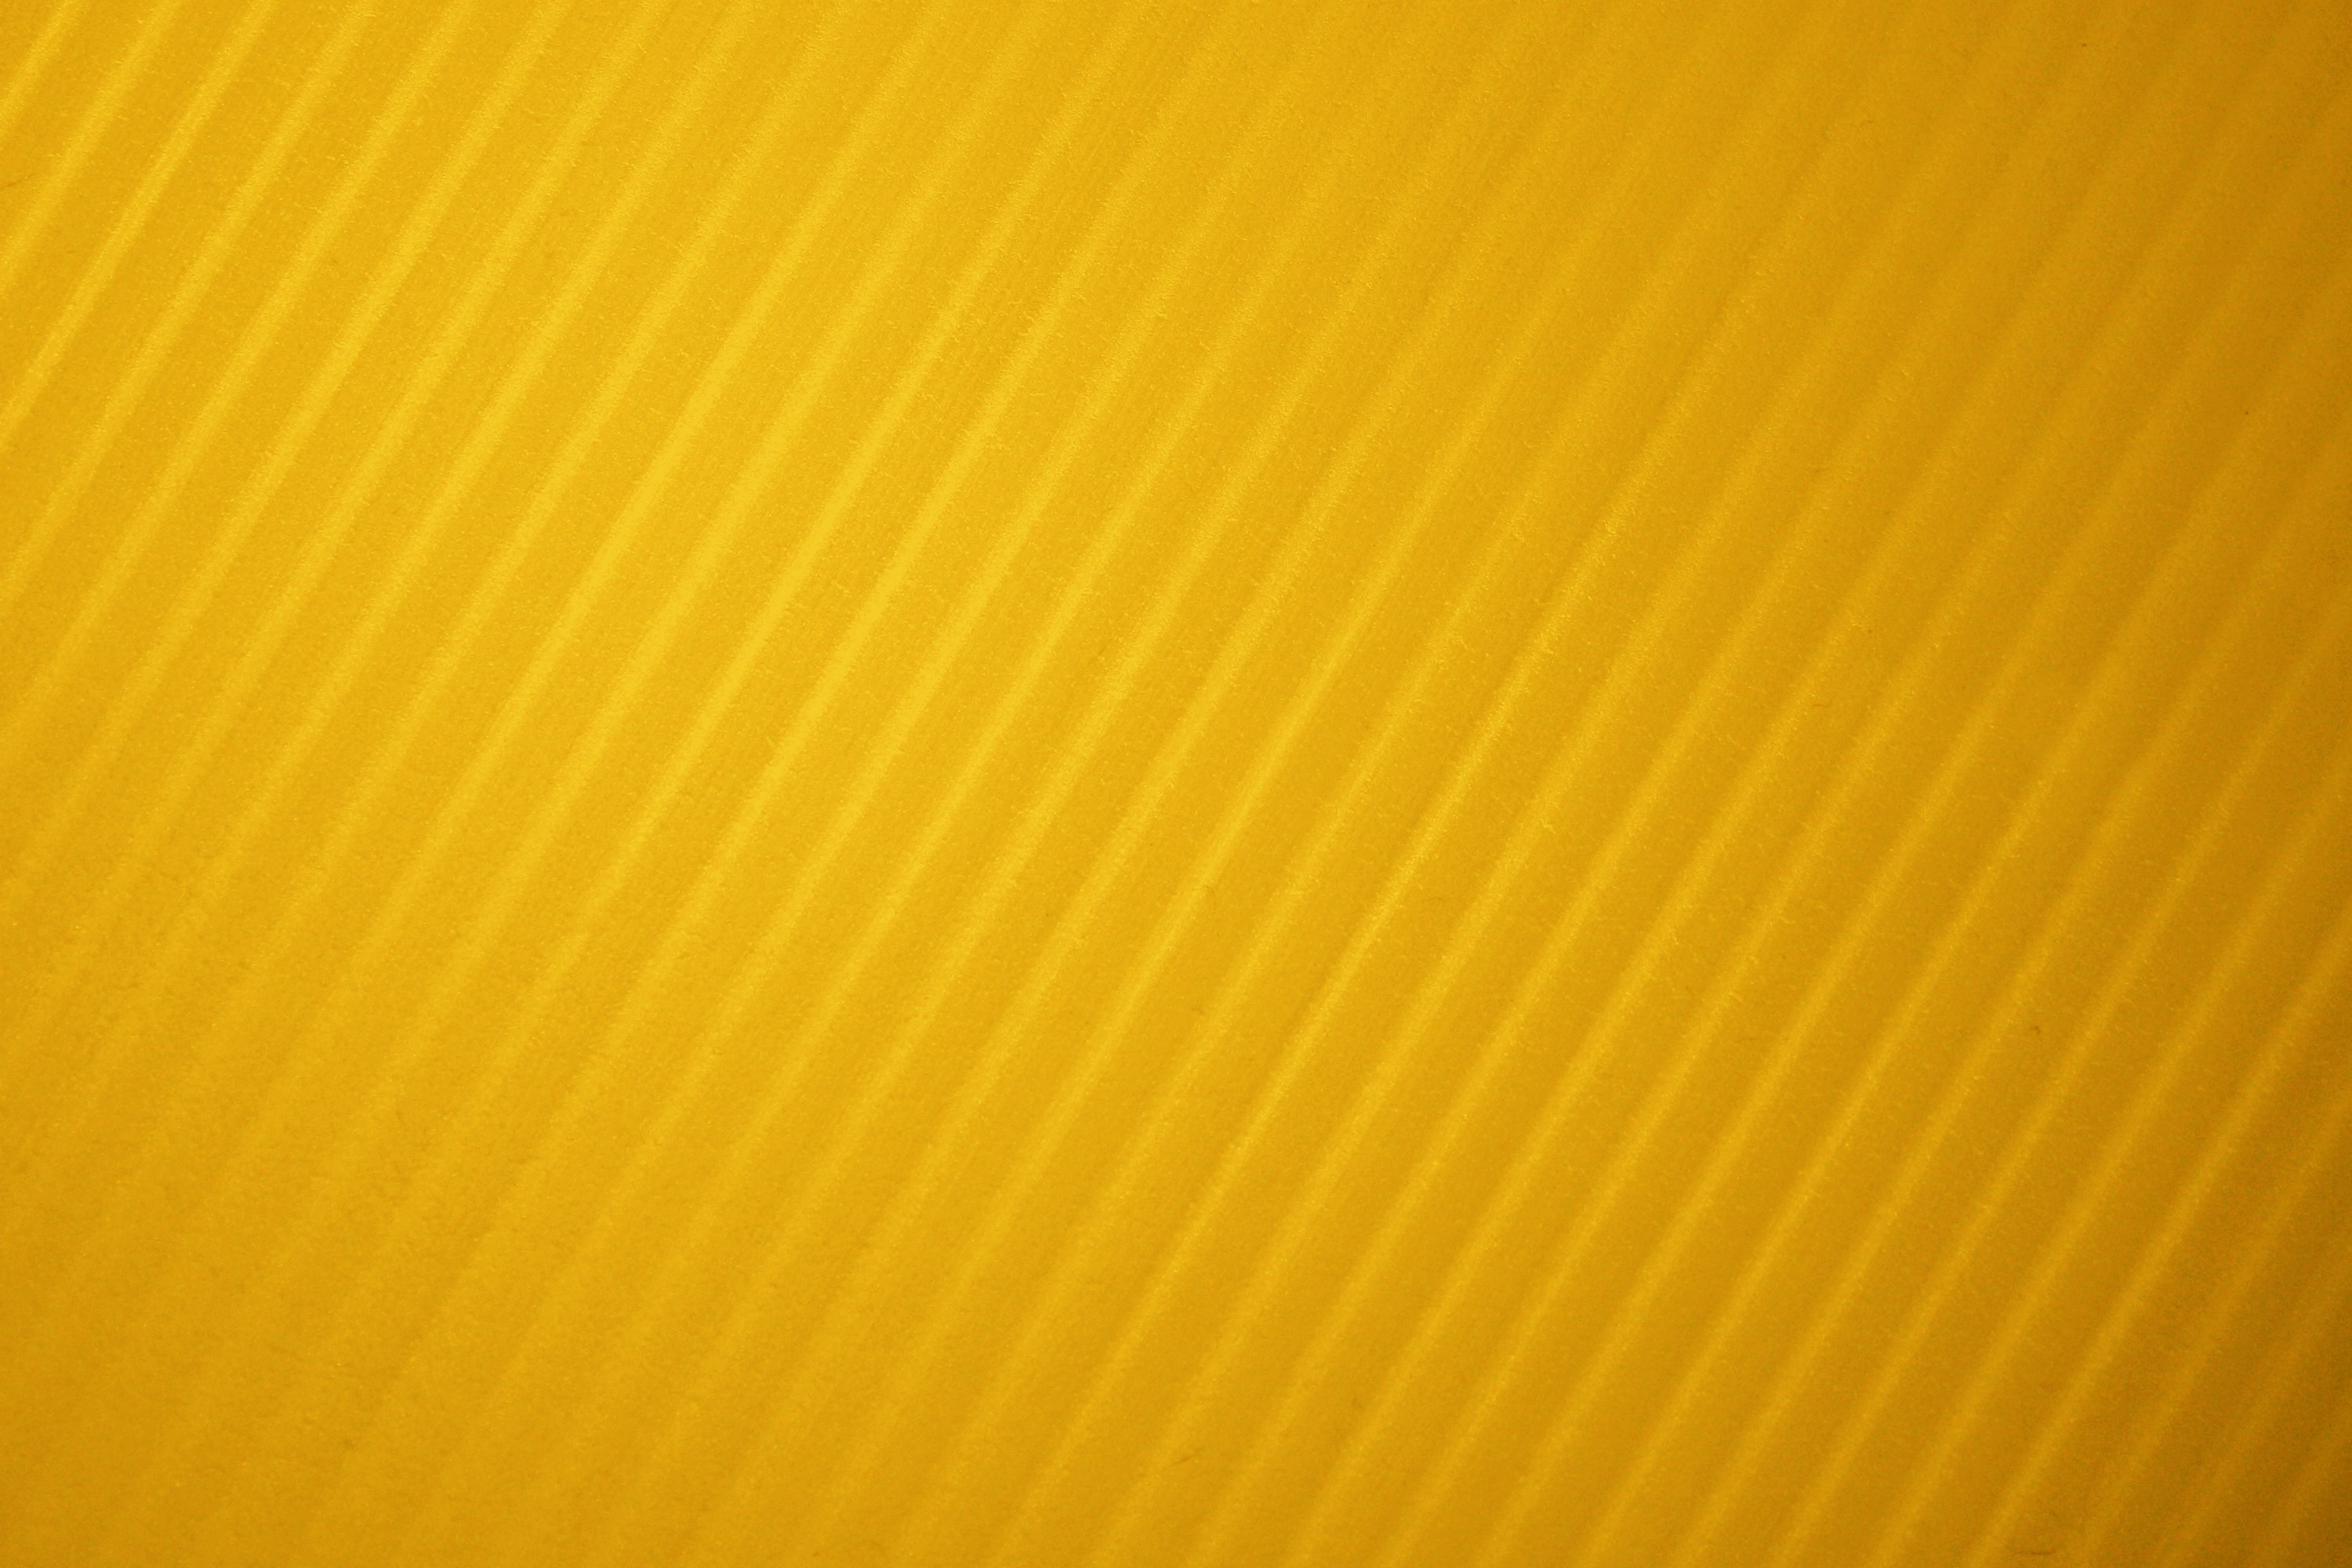 yellow plastic material texture, plastic, download photo, yellow plastic texture background